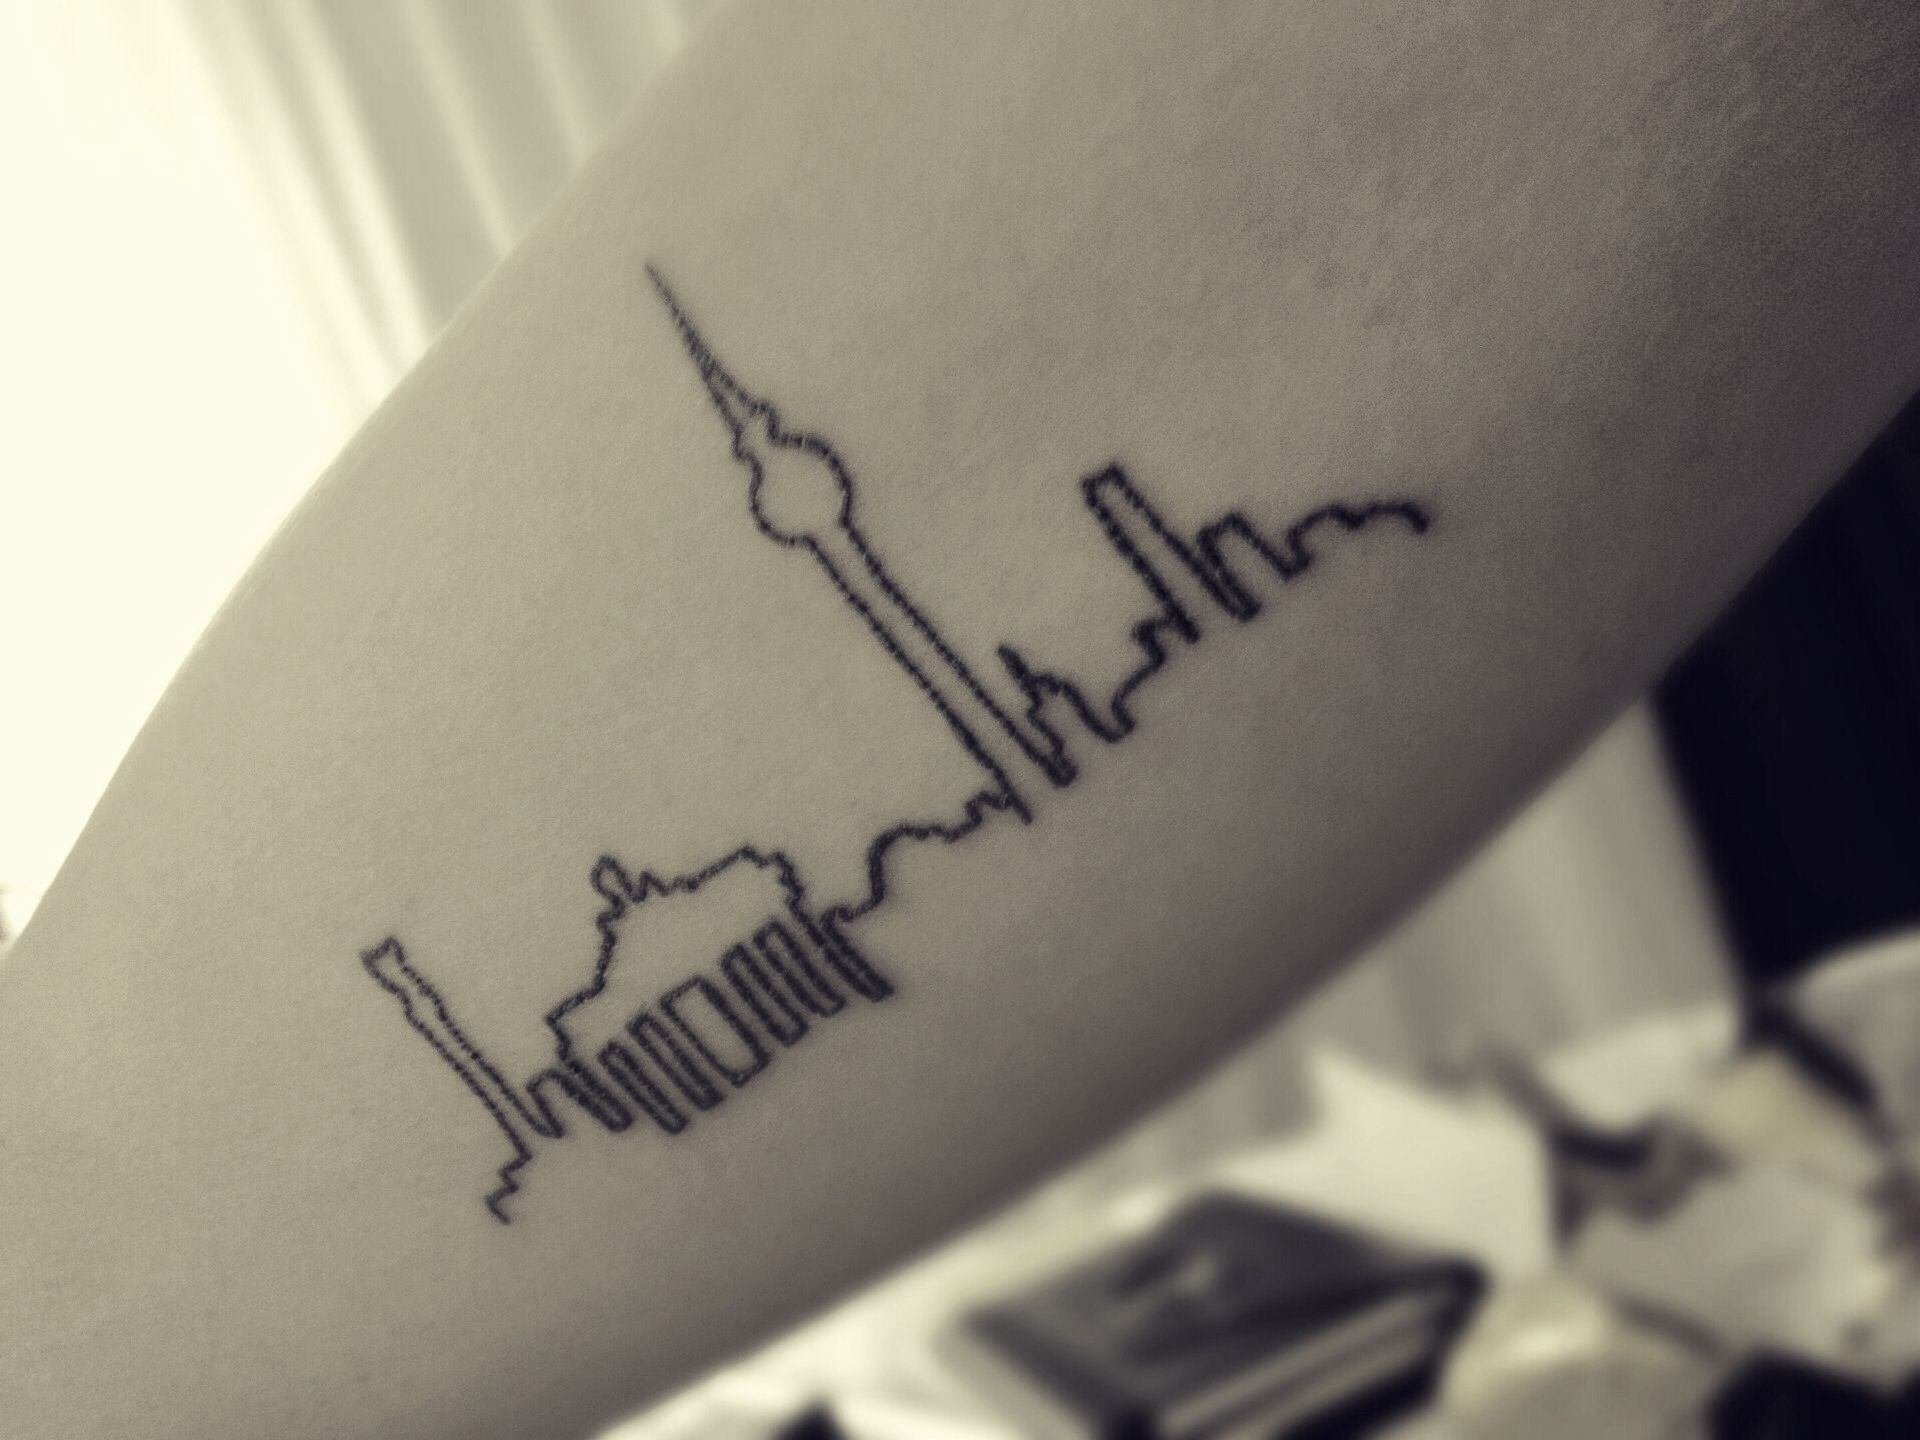 Berlin City Skyline Tattoo Tatowiertinte Tattoo Ideen